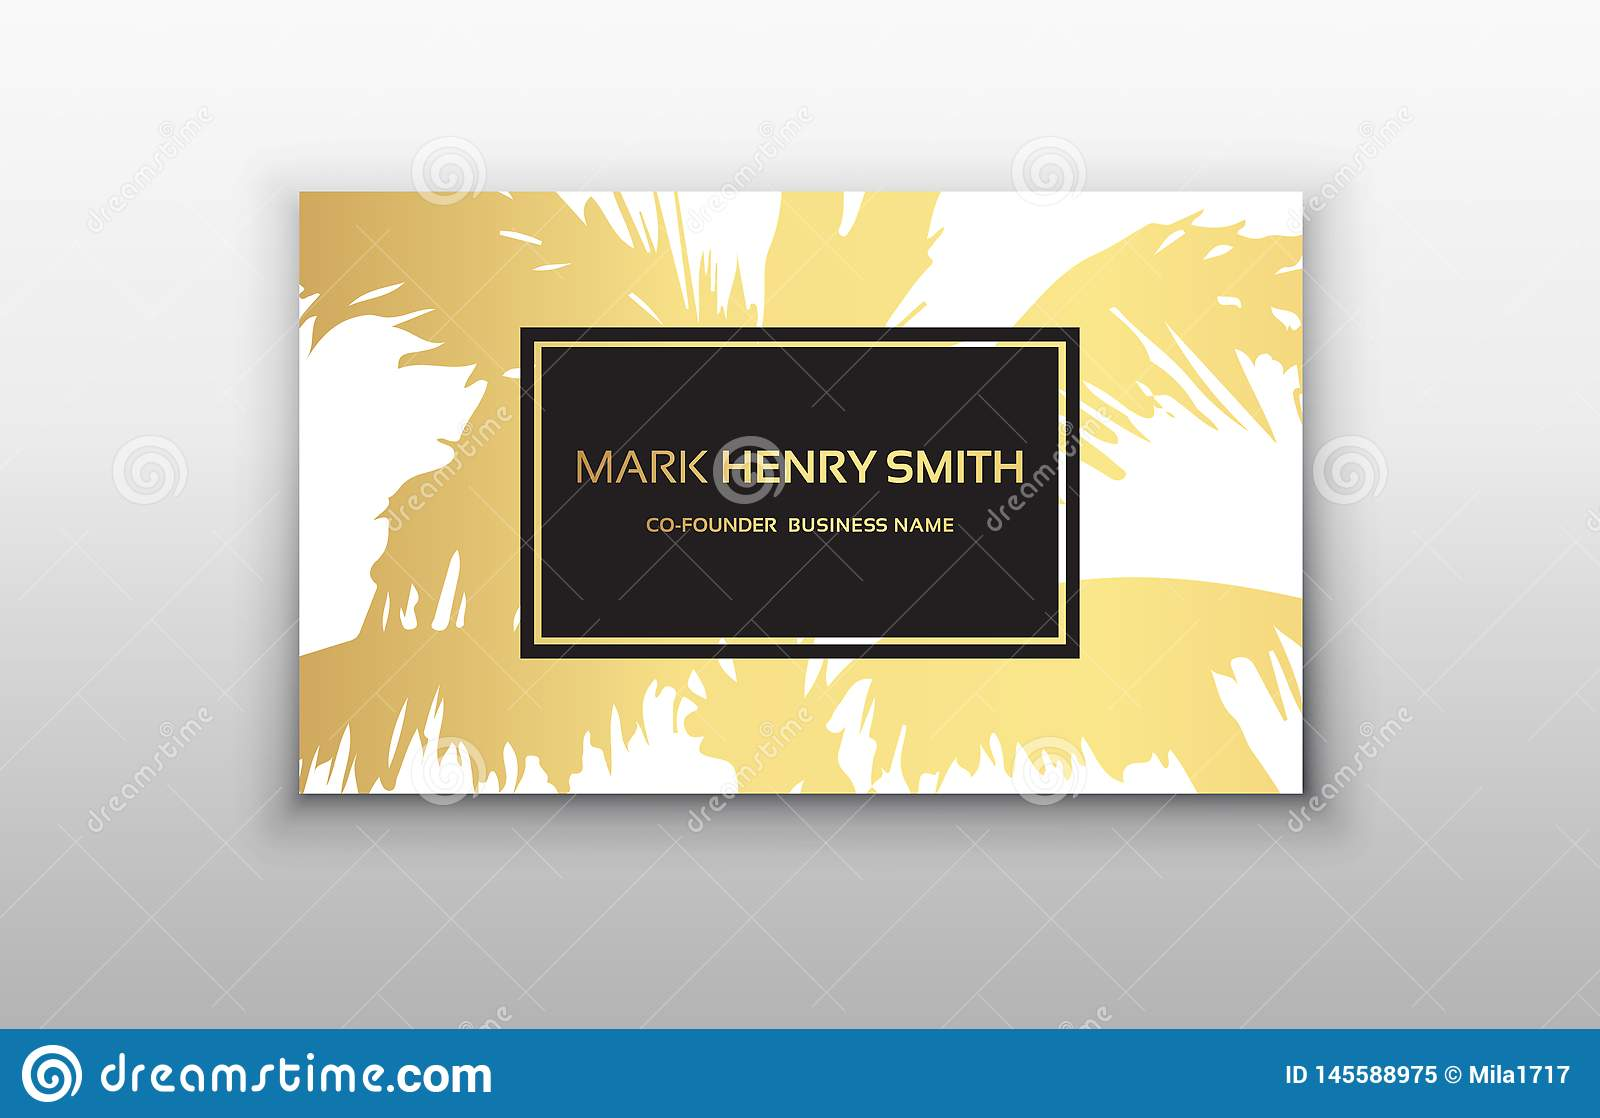 21+ Business Card Templates Christian View Christian Business Regarding Christian Business Cards Templates Free